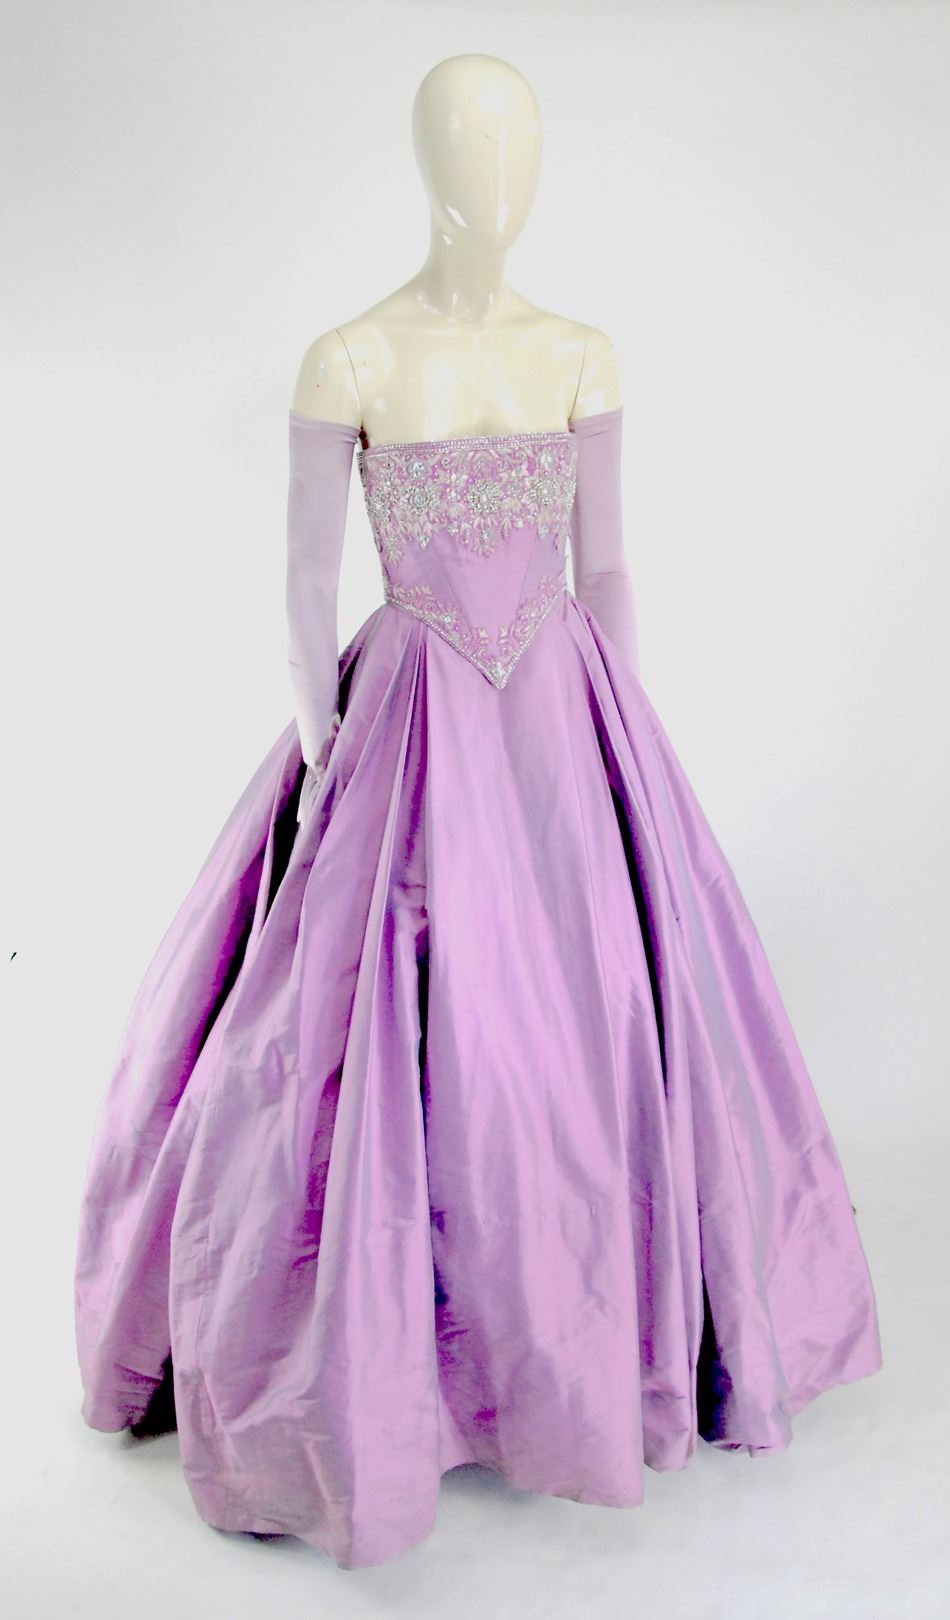 snow White and Emma Swan purple fairy tale gown from Once Upon a Time Season 1 4. 1